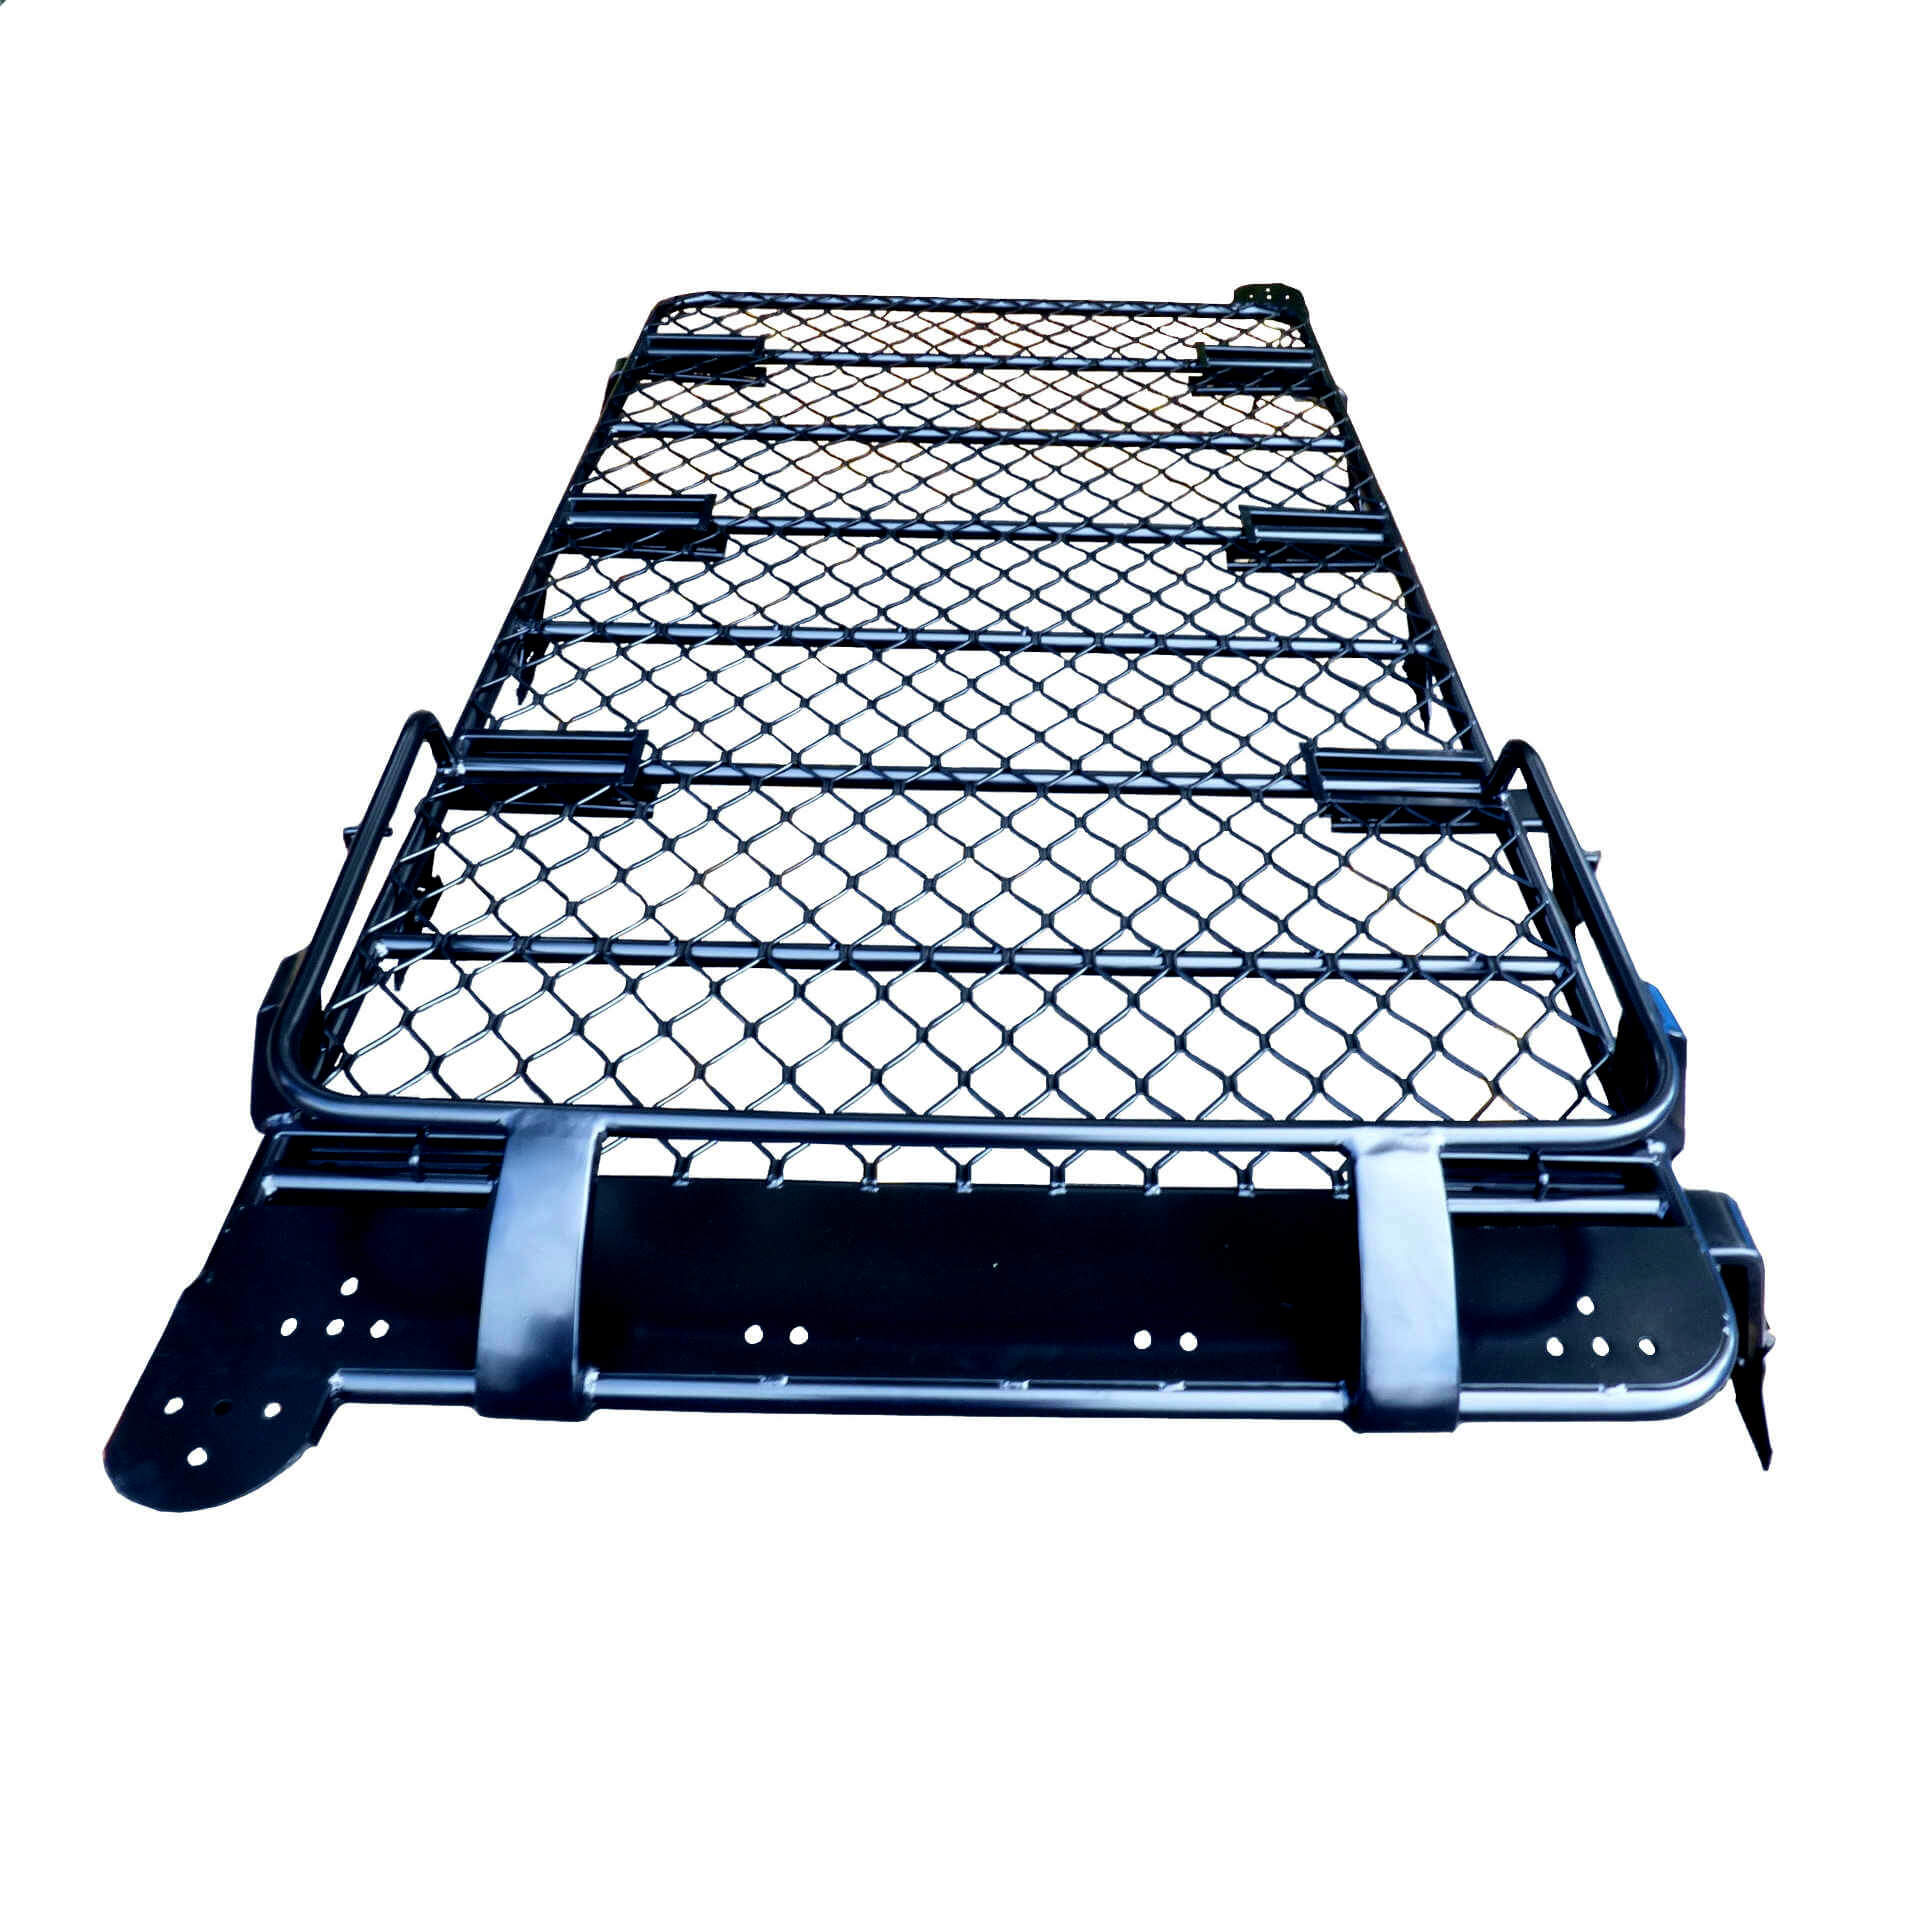 Direct4x4 Accessories UK | Expedition Aluminium Front Basket Roof Rack